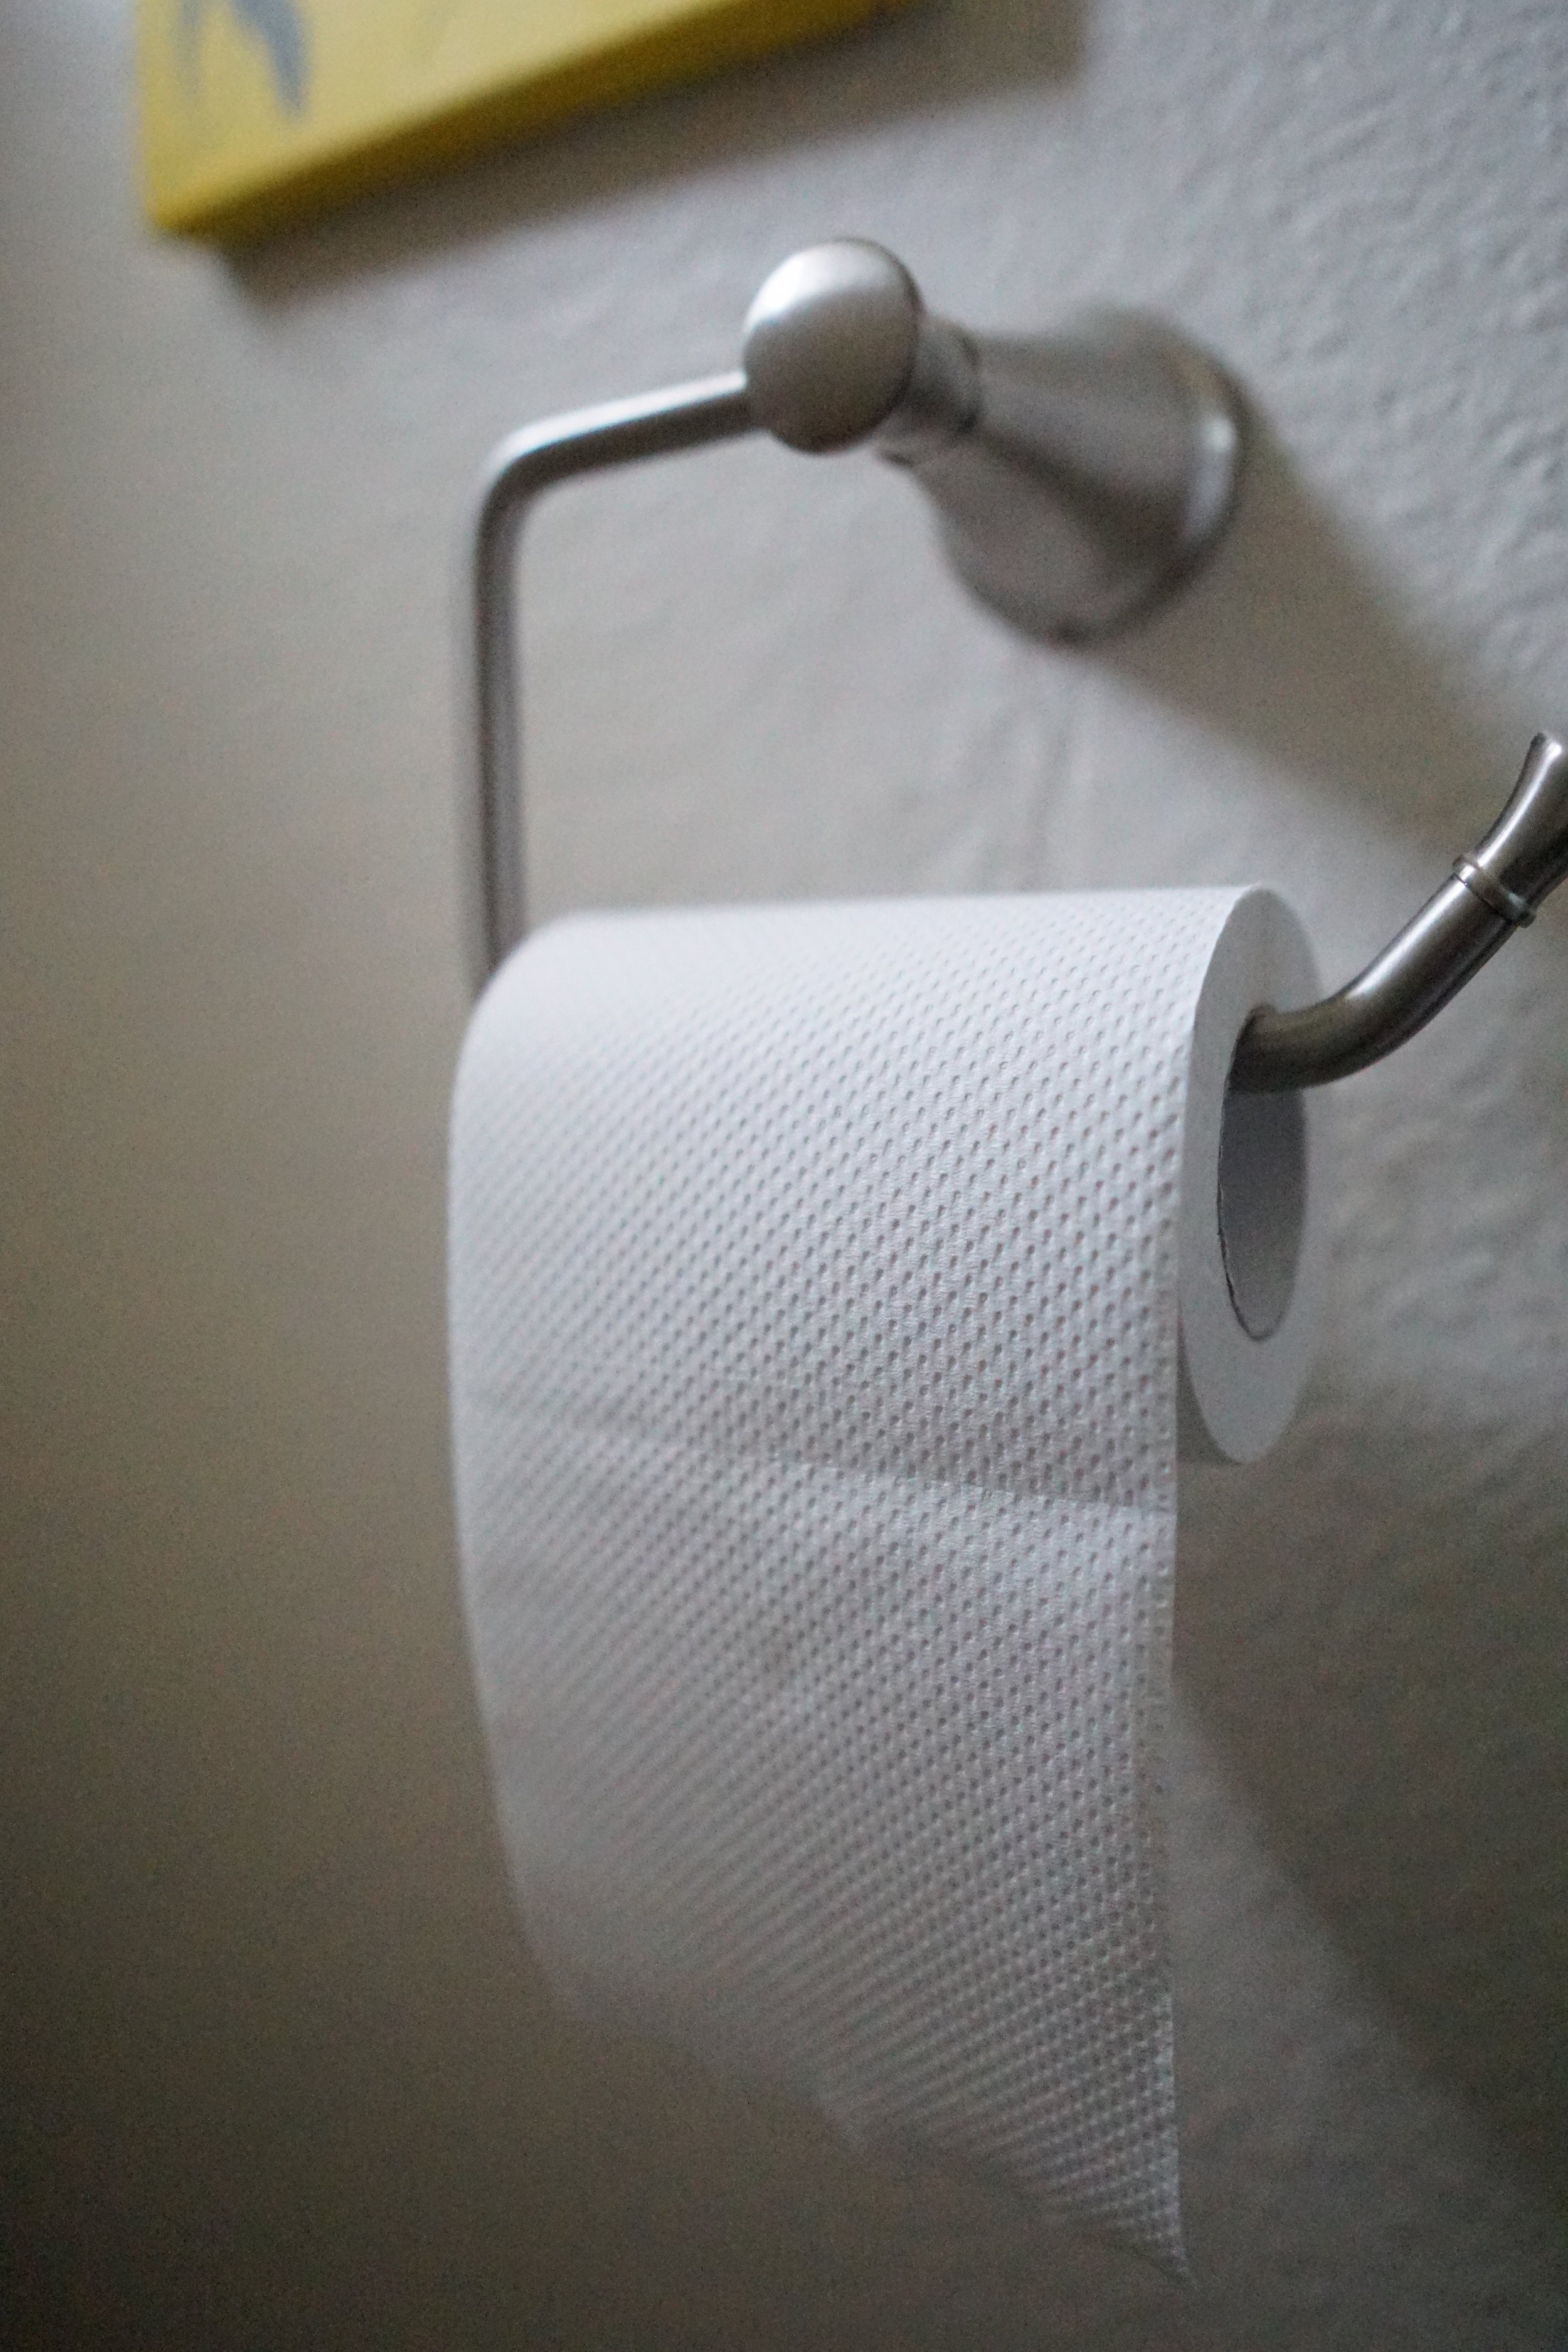 5 things I love about who gives a crap recycled toilet paper from www.goingzerowaste.com